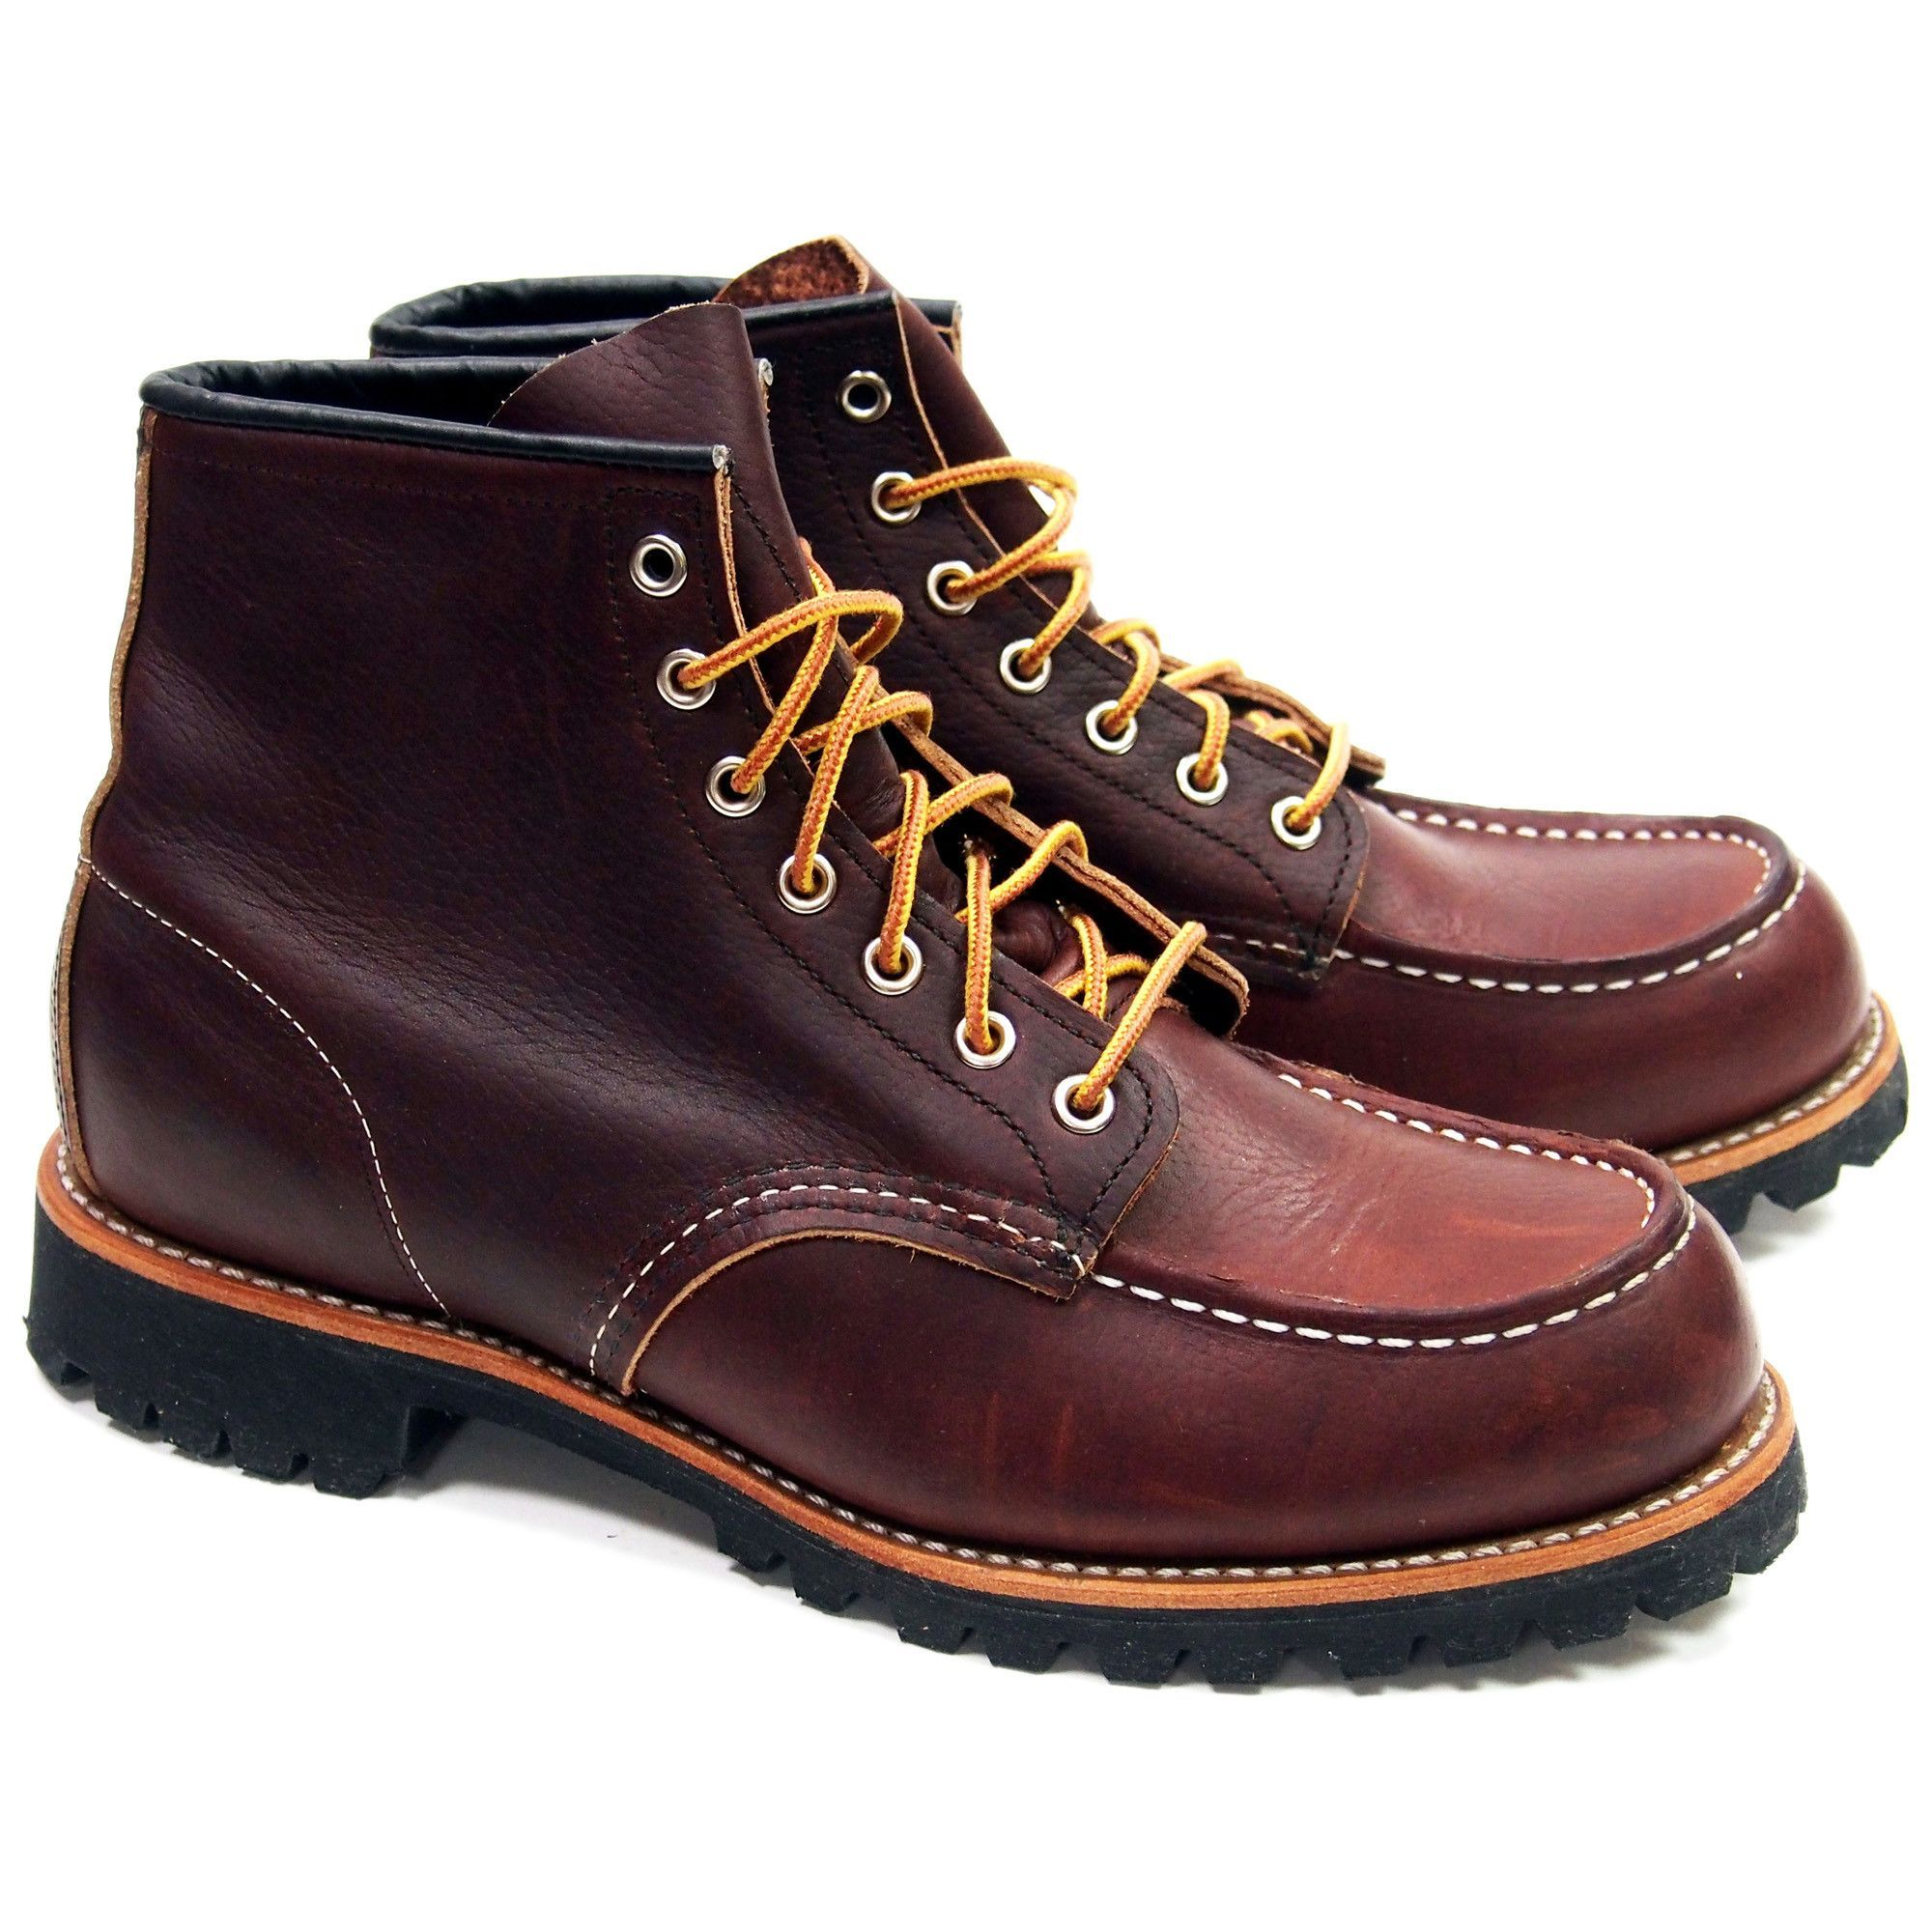 STYLE NO. 8146 : ROUGHNECK Modeled after Red Wing's original work boot style, the 8146 is a 6-Inch Moc Toe featuring Briar Oil Slick leather, Vibram Lug outsole, triple stitched quality and Goodyear w